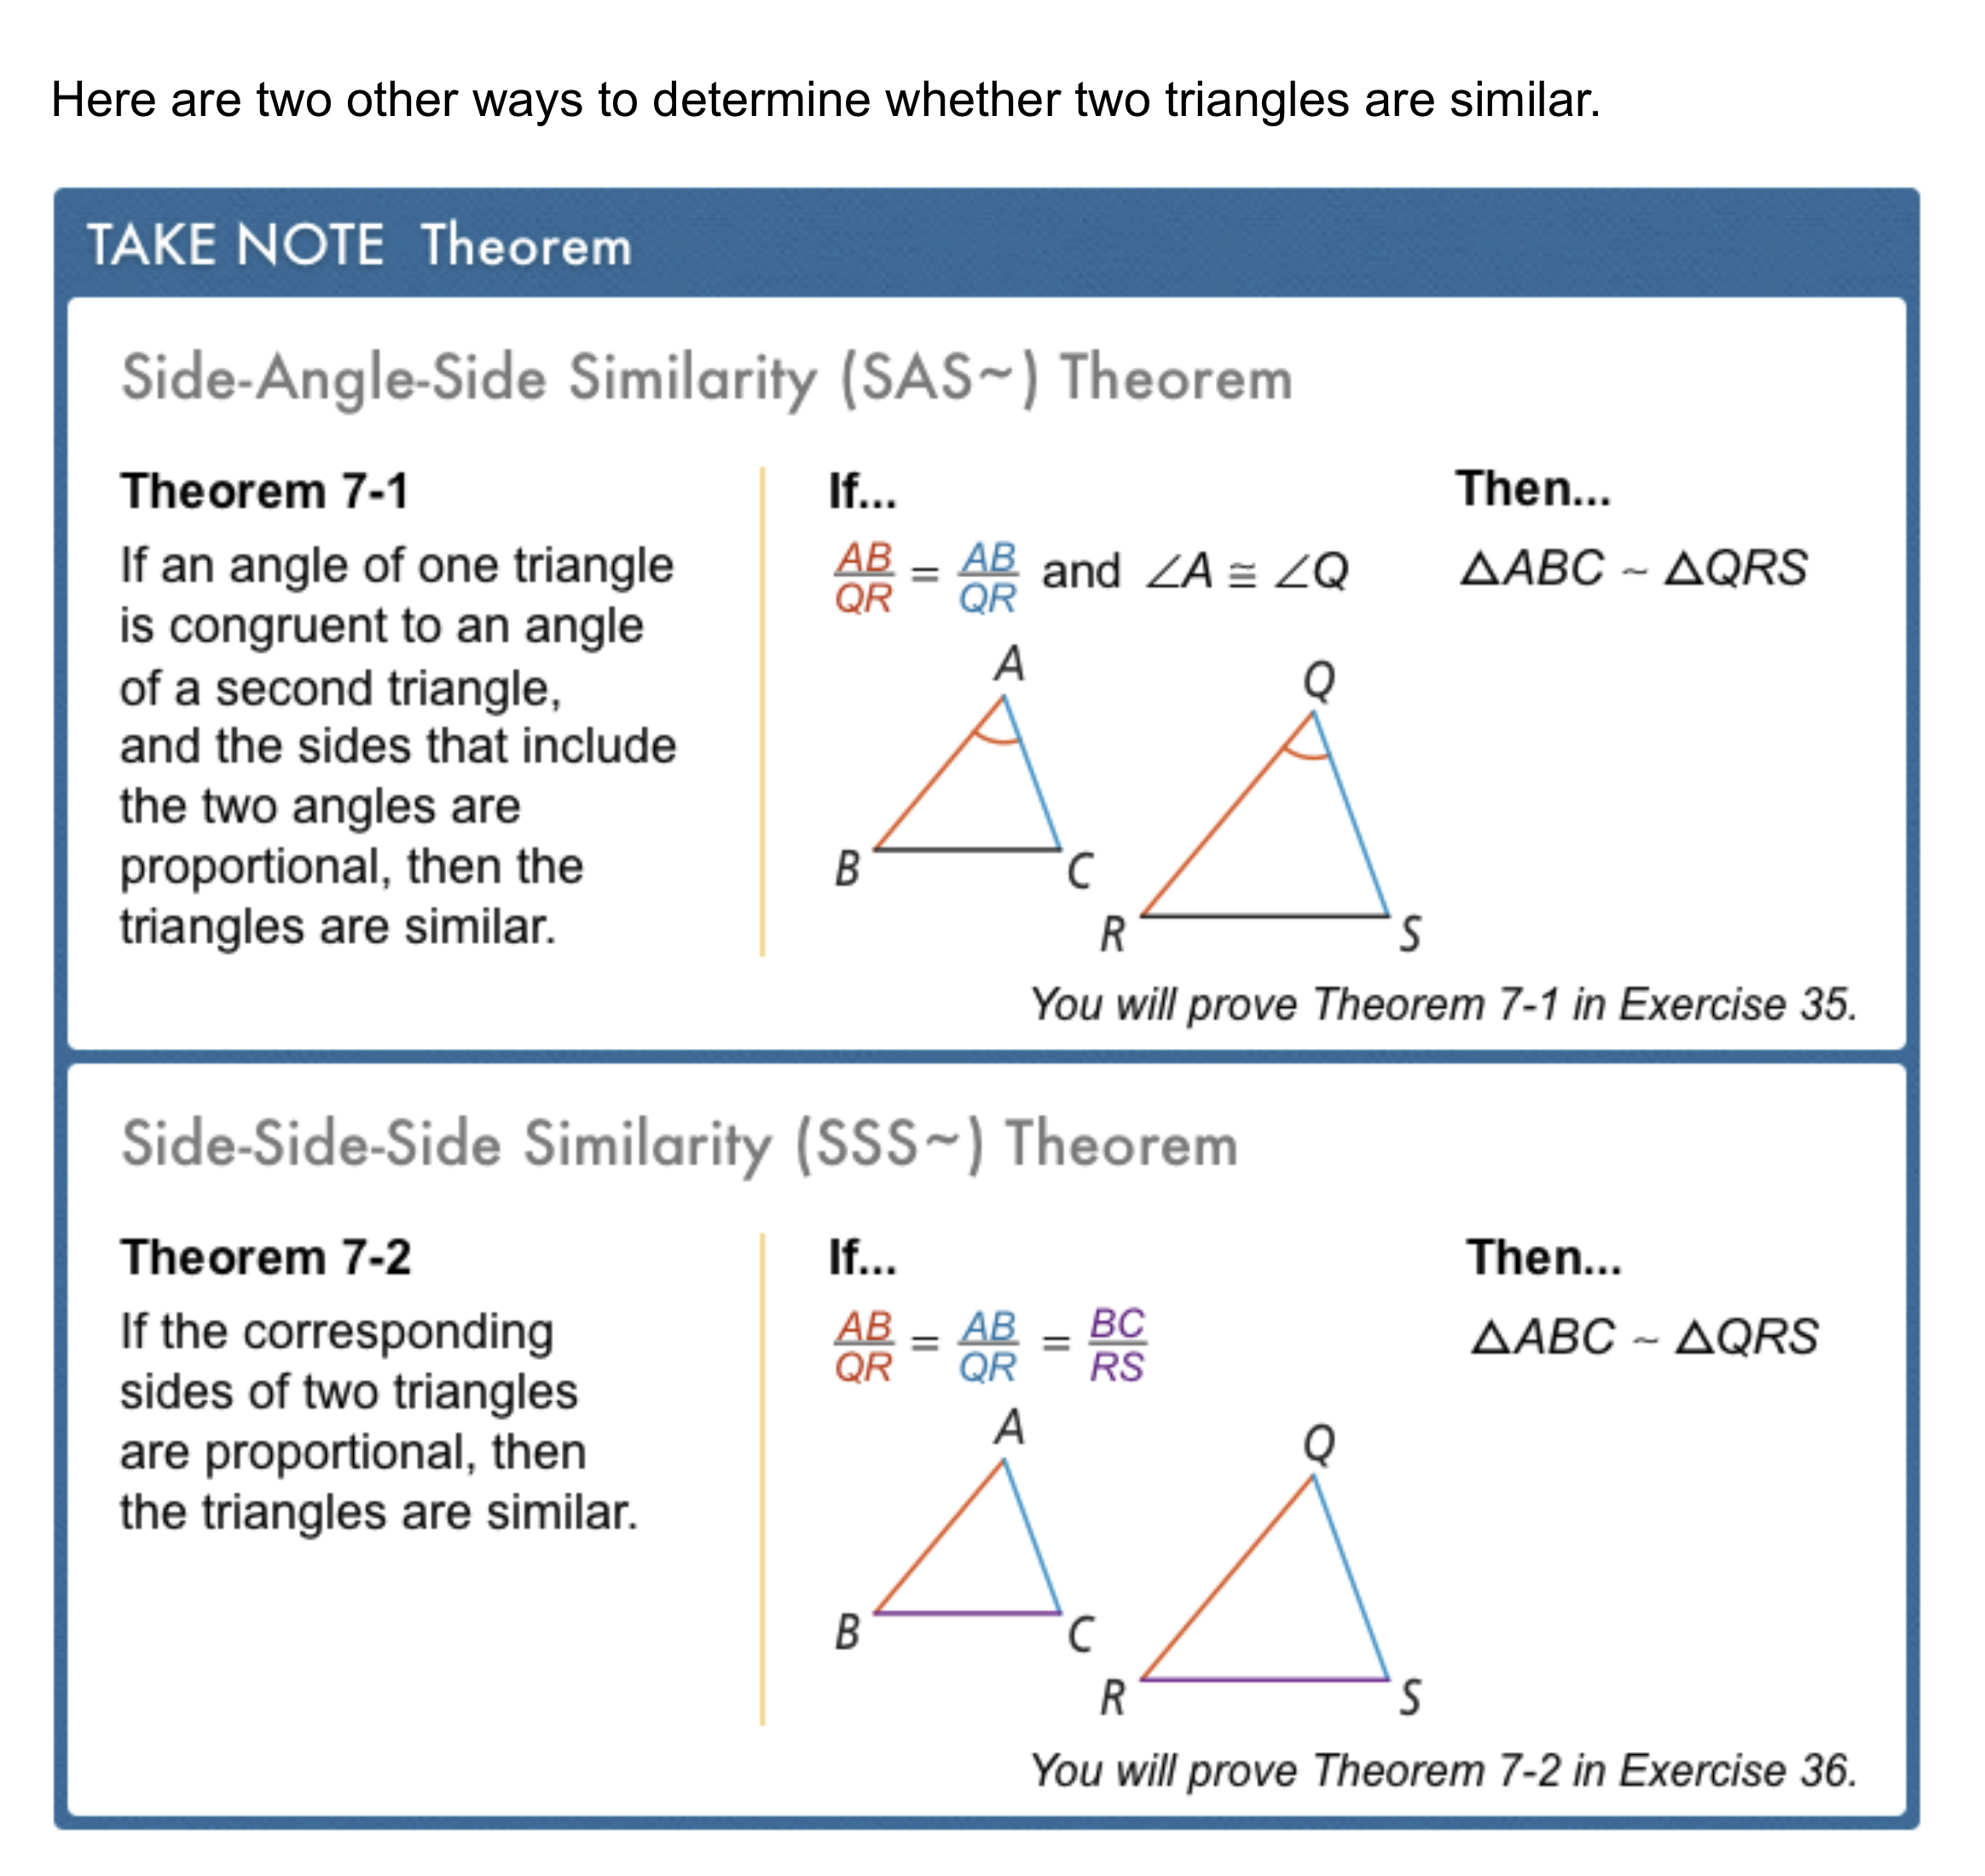 Geometry 24-24 Complete Lesson: Proving Similar Triangles - Matthew Regarding Proving Triangles Similar Worksheet